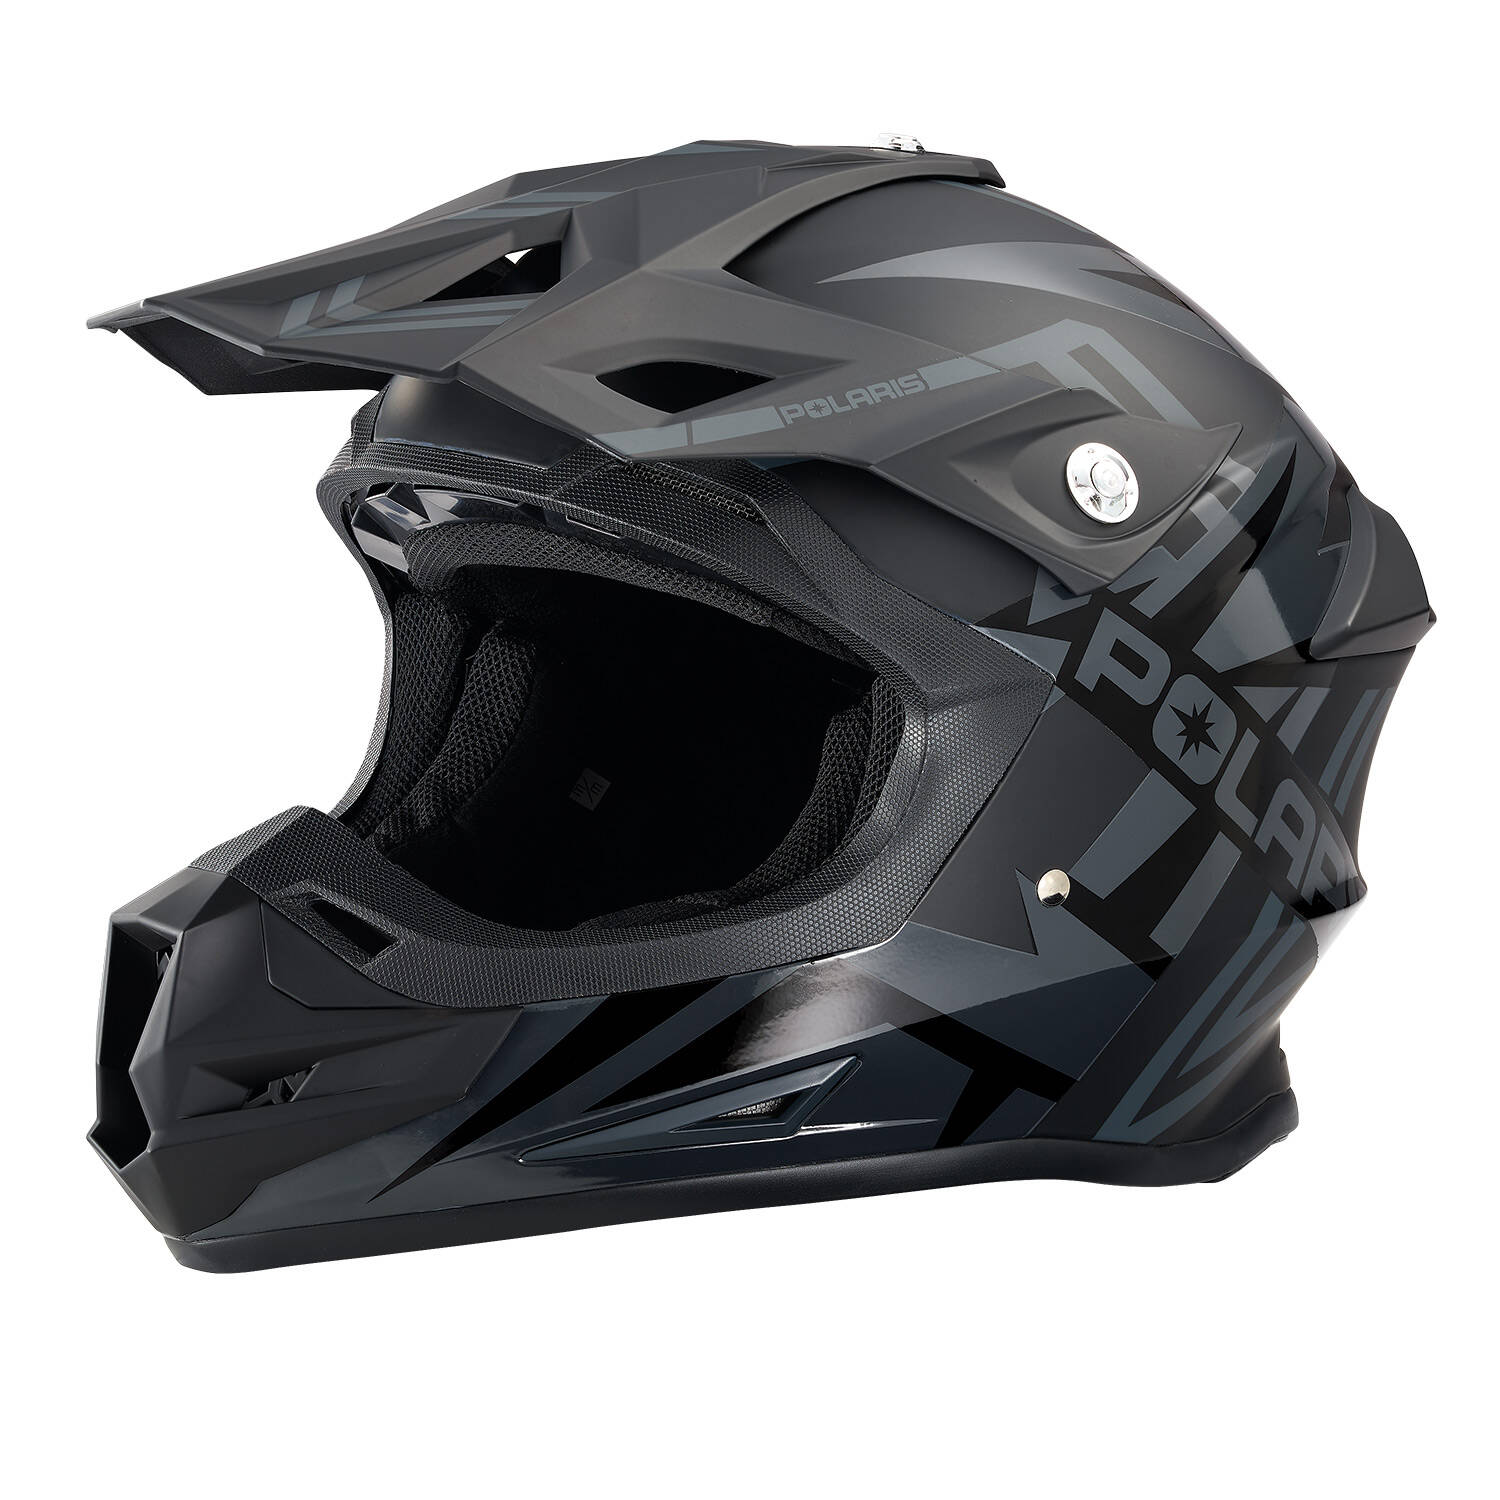 Force Adult Moto Helmet with Removable Mouthpiece, Black Matte